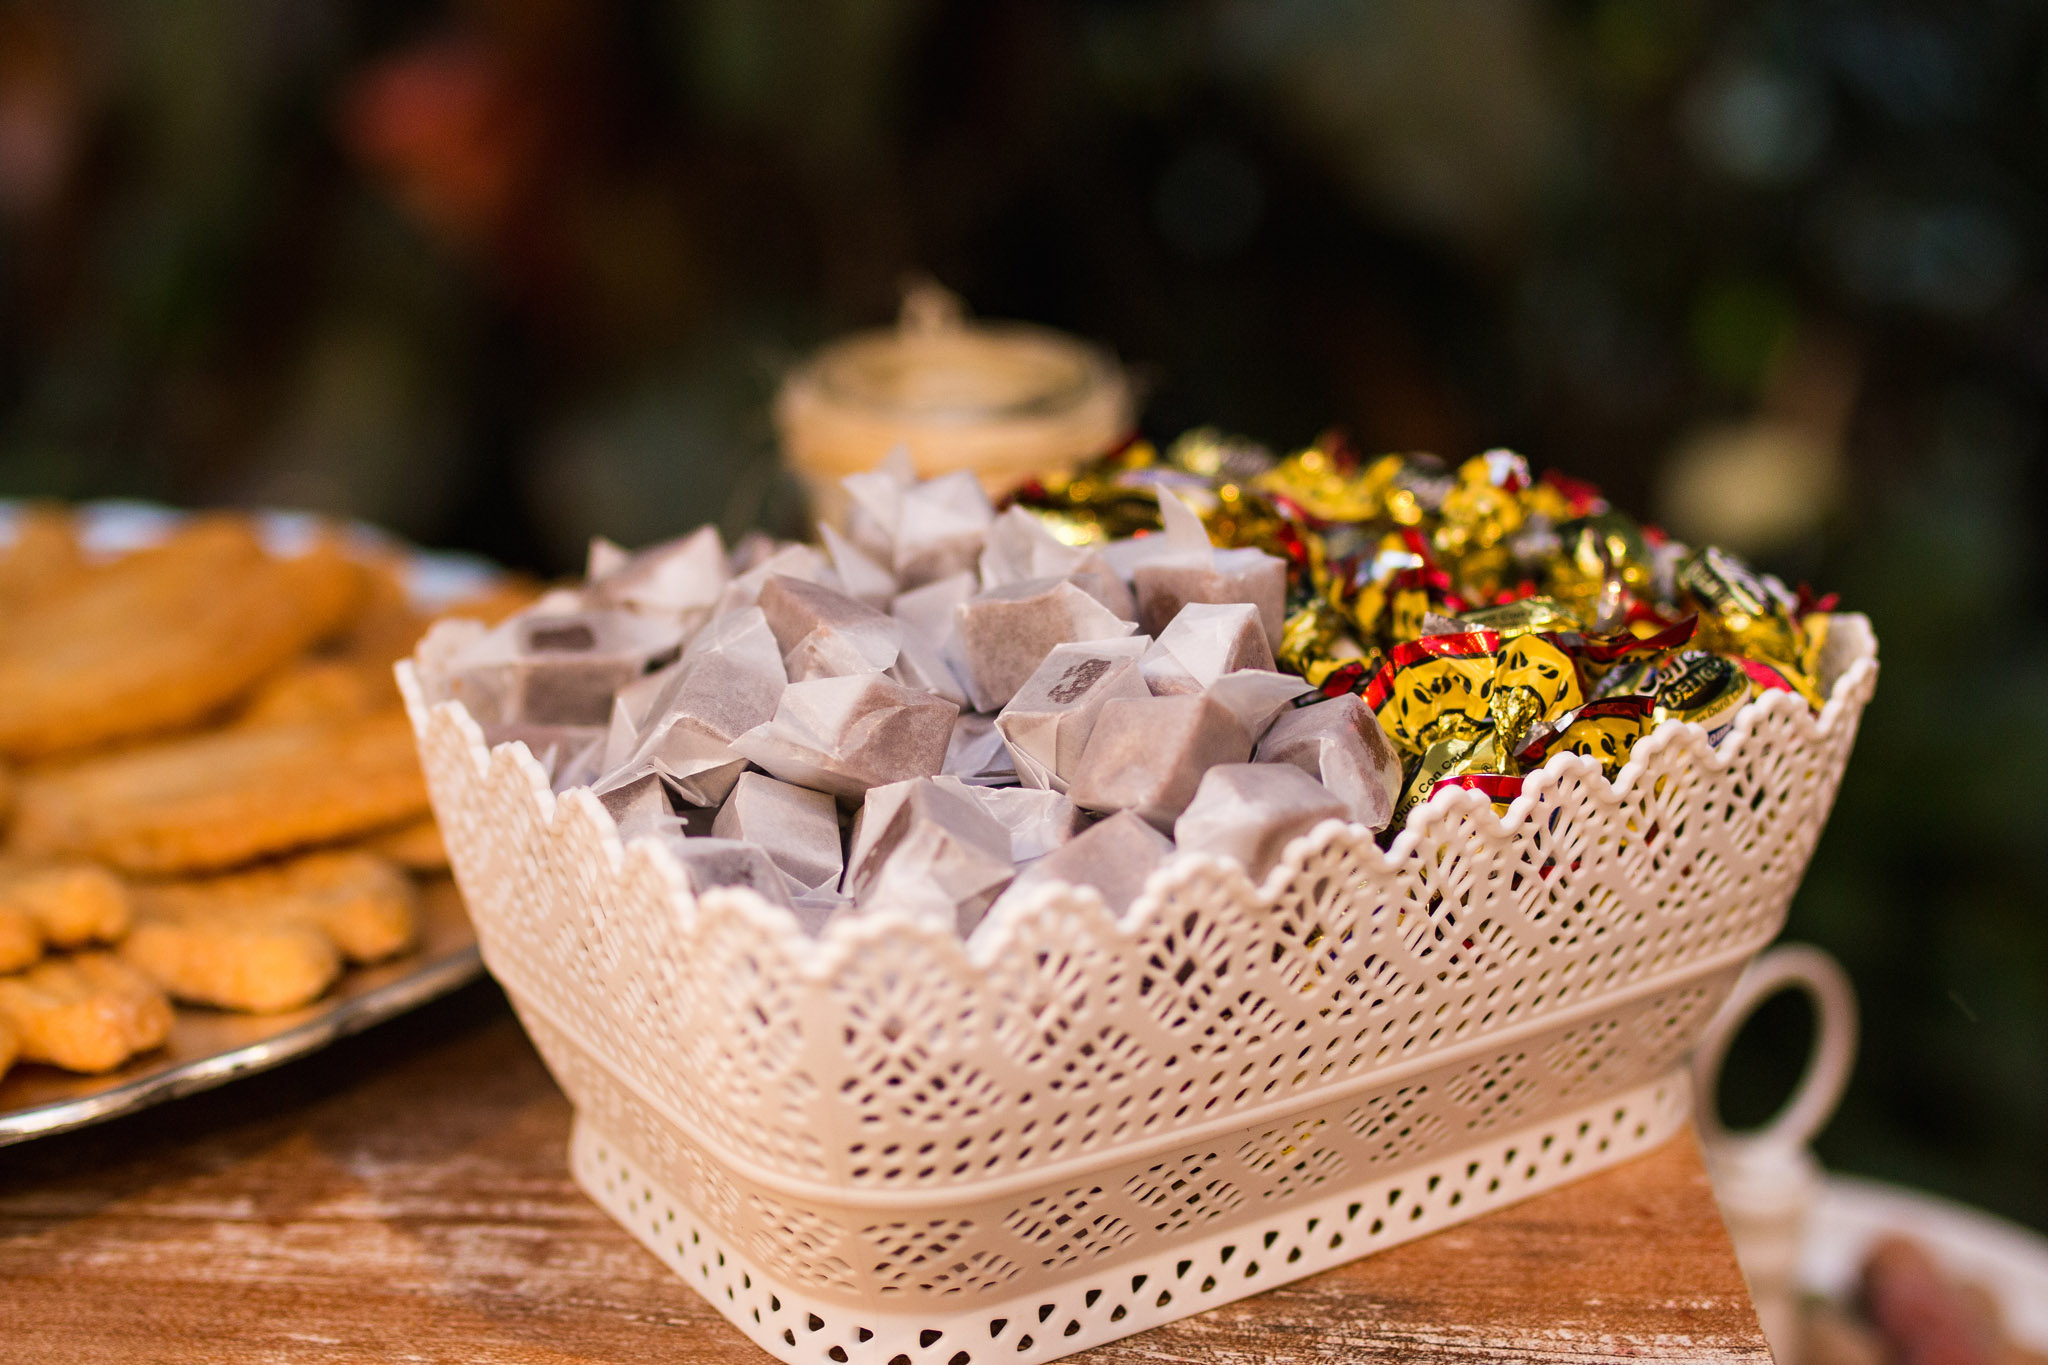 wedding-travellers-destination-wedding-photography-colombia-medellin-chuscalito-candy-sweet-caramel-coffee